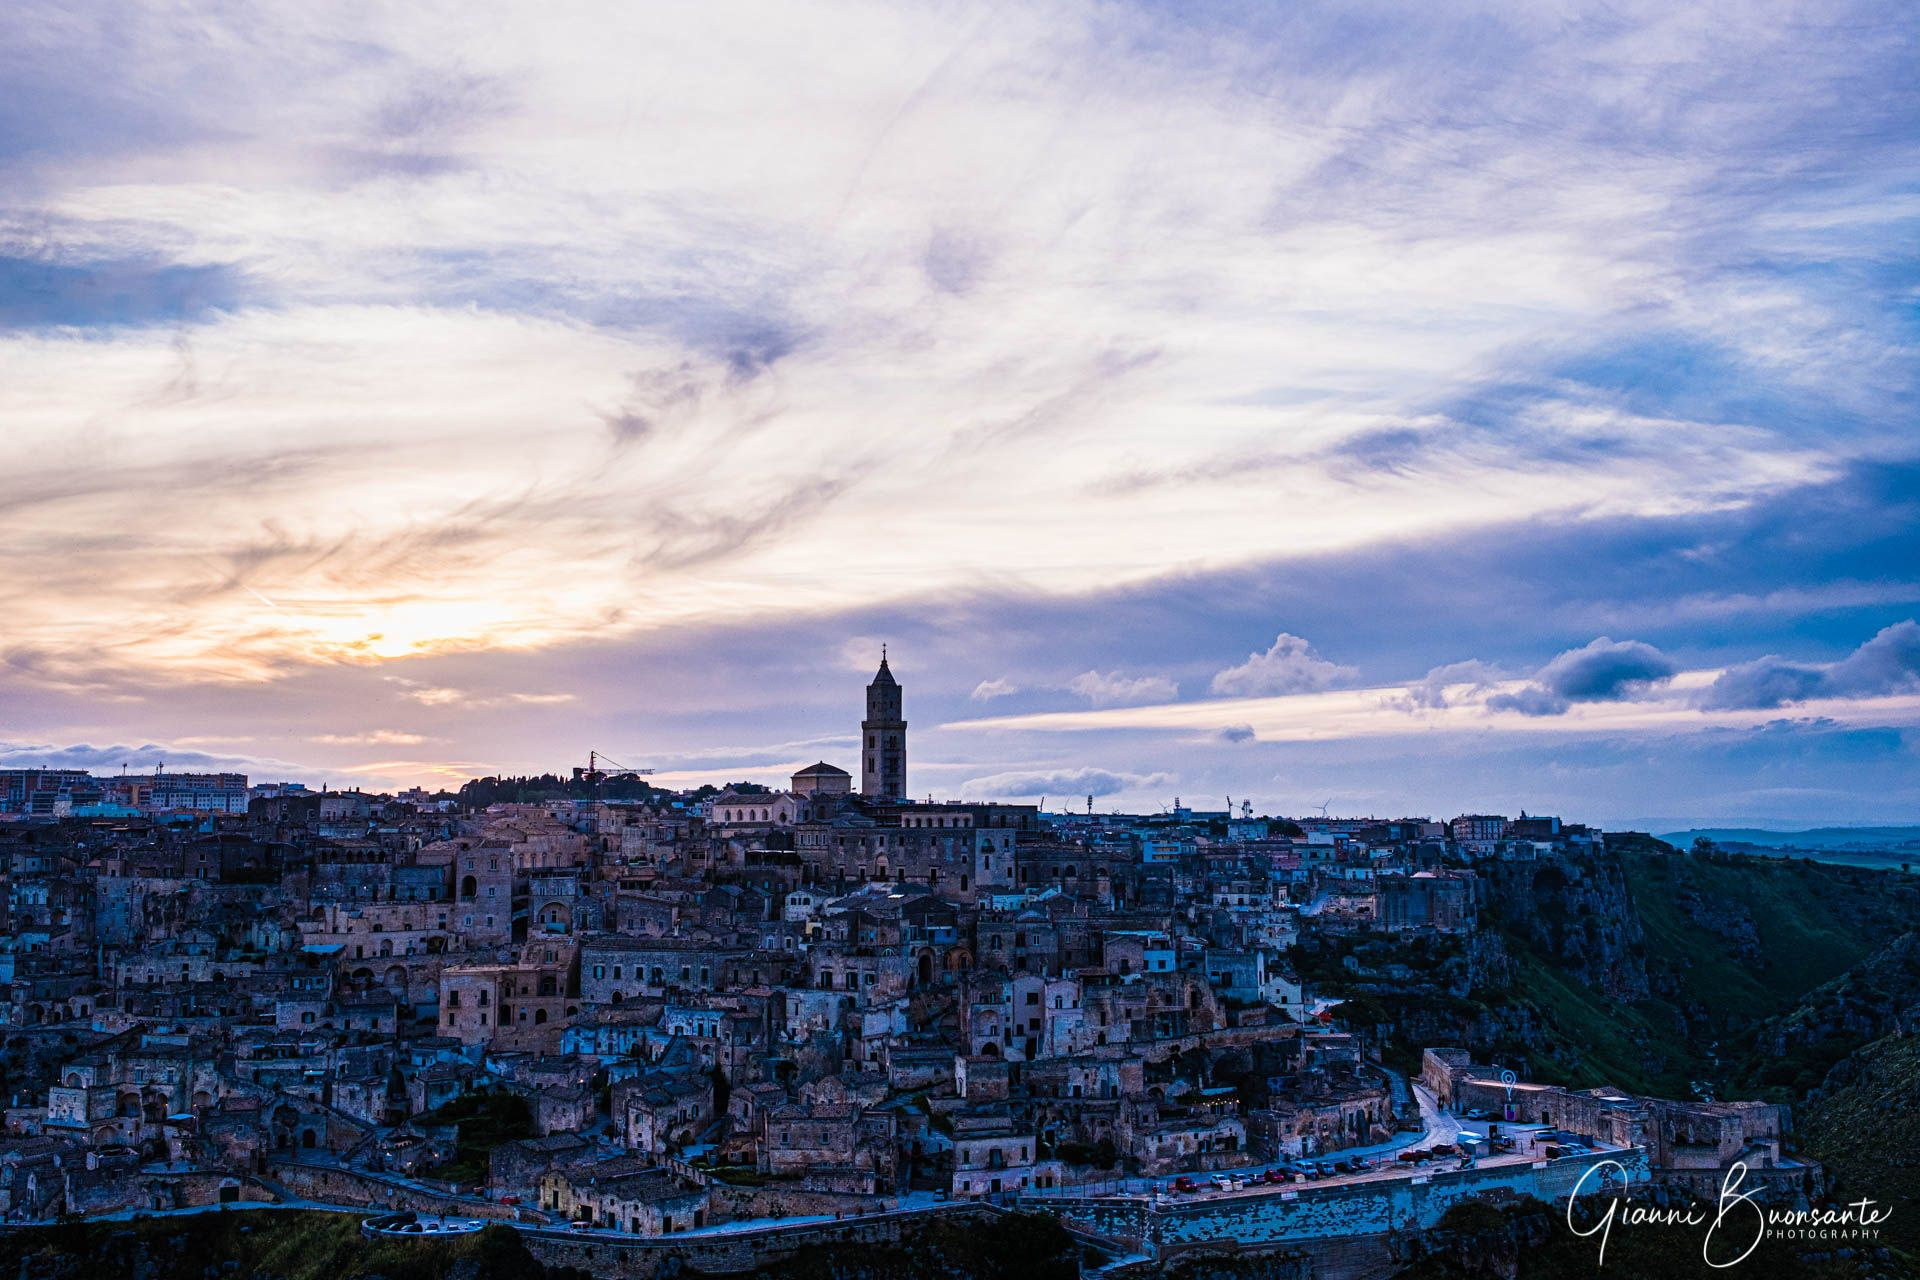 Matera 2019 European Capital of Culture